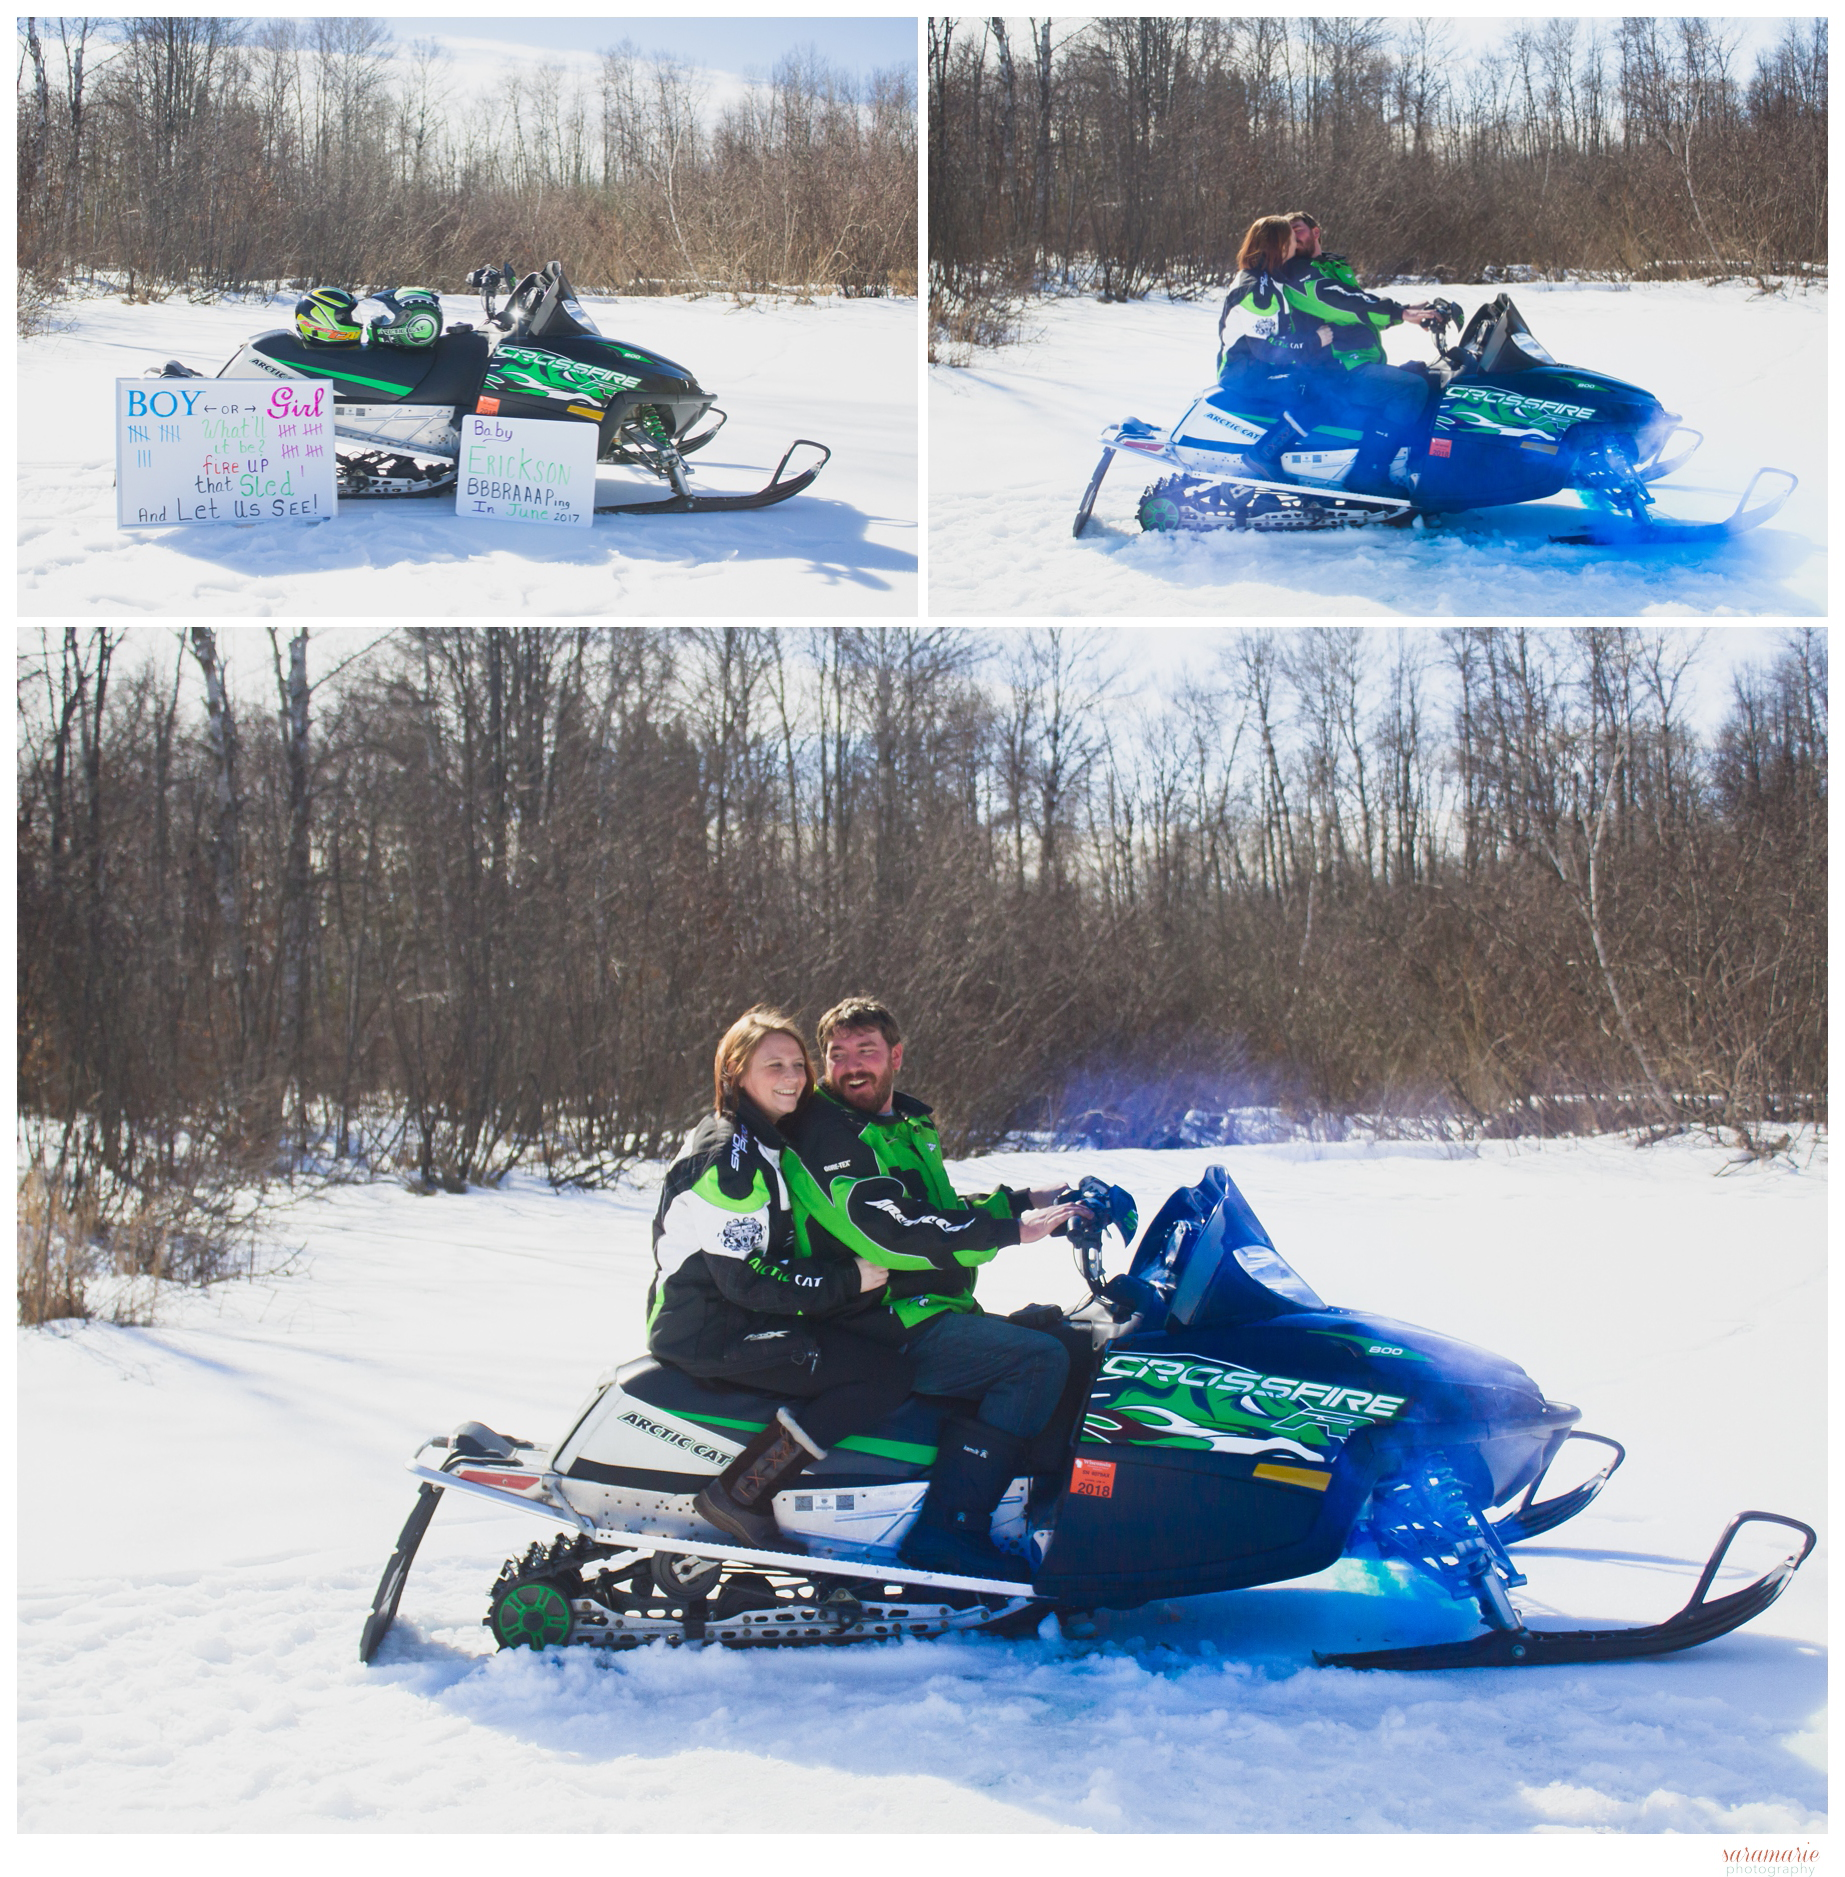 696f9c129 Snowmobile Gender Reveal Arctic Cat Style